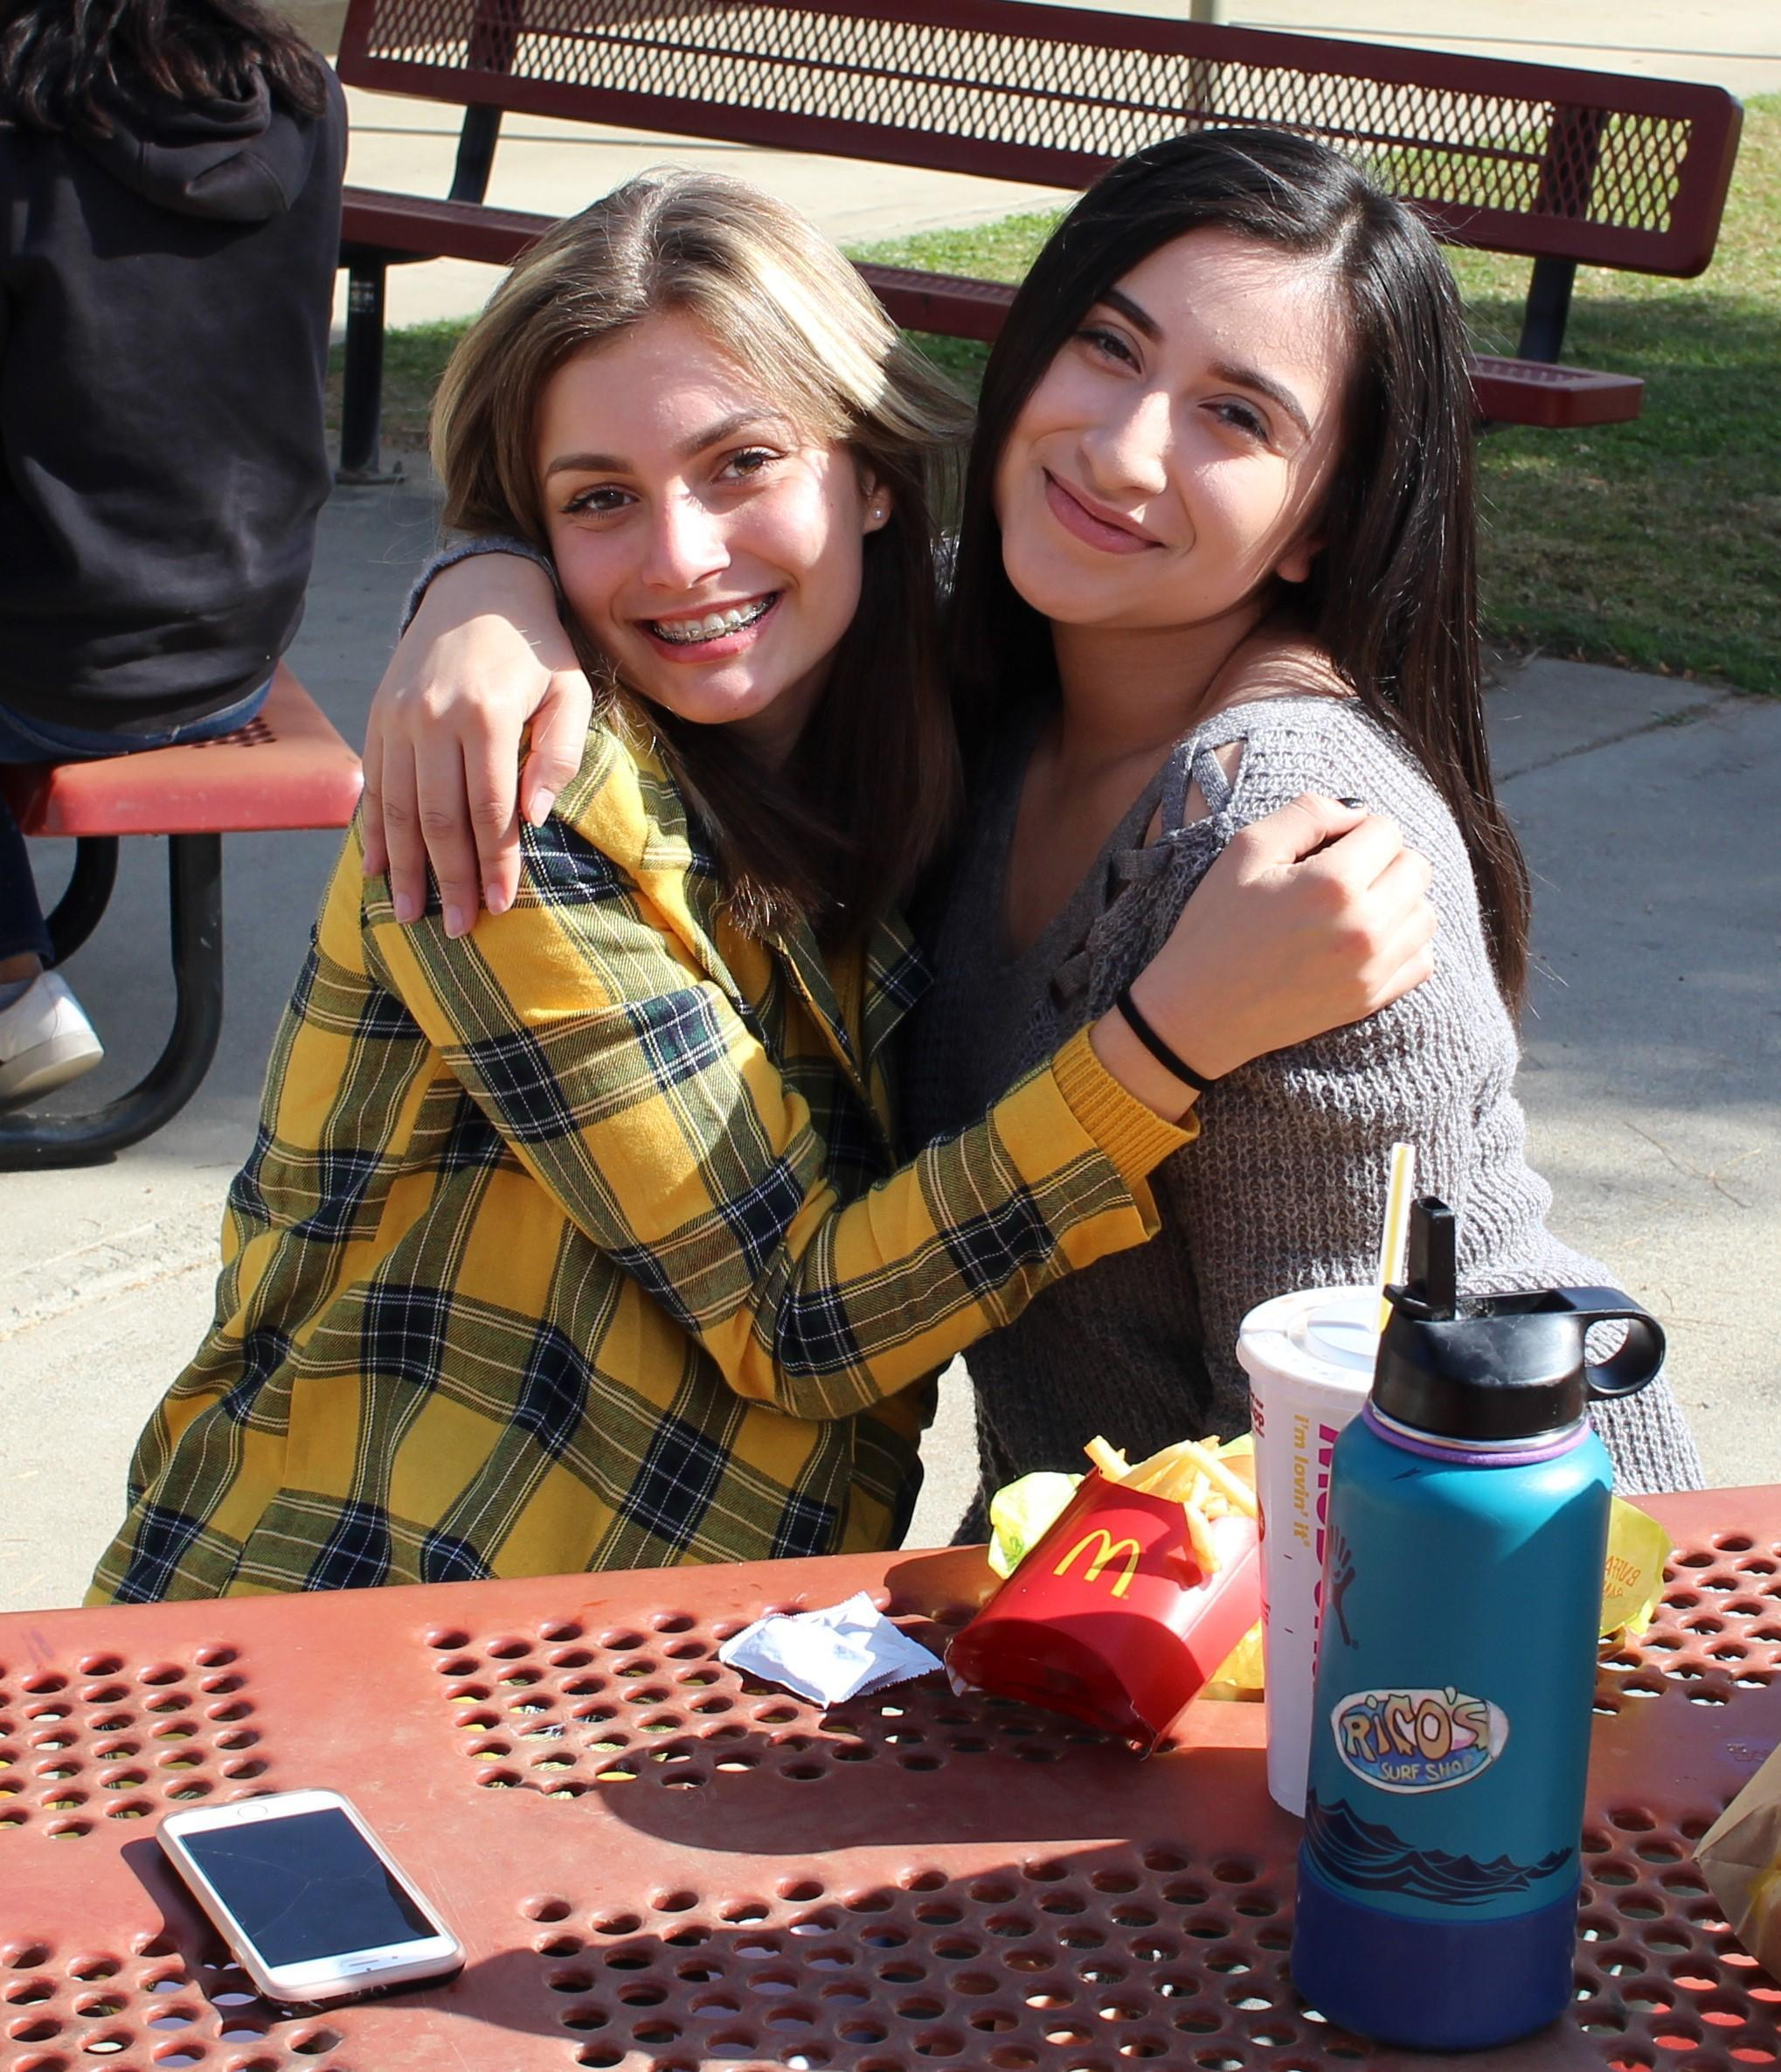 Kirsta Pitarre and Azucena Vazquez at lunch